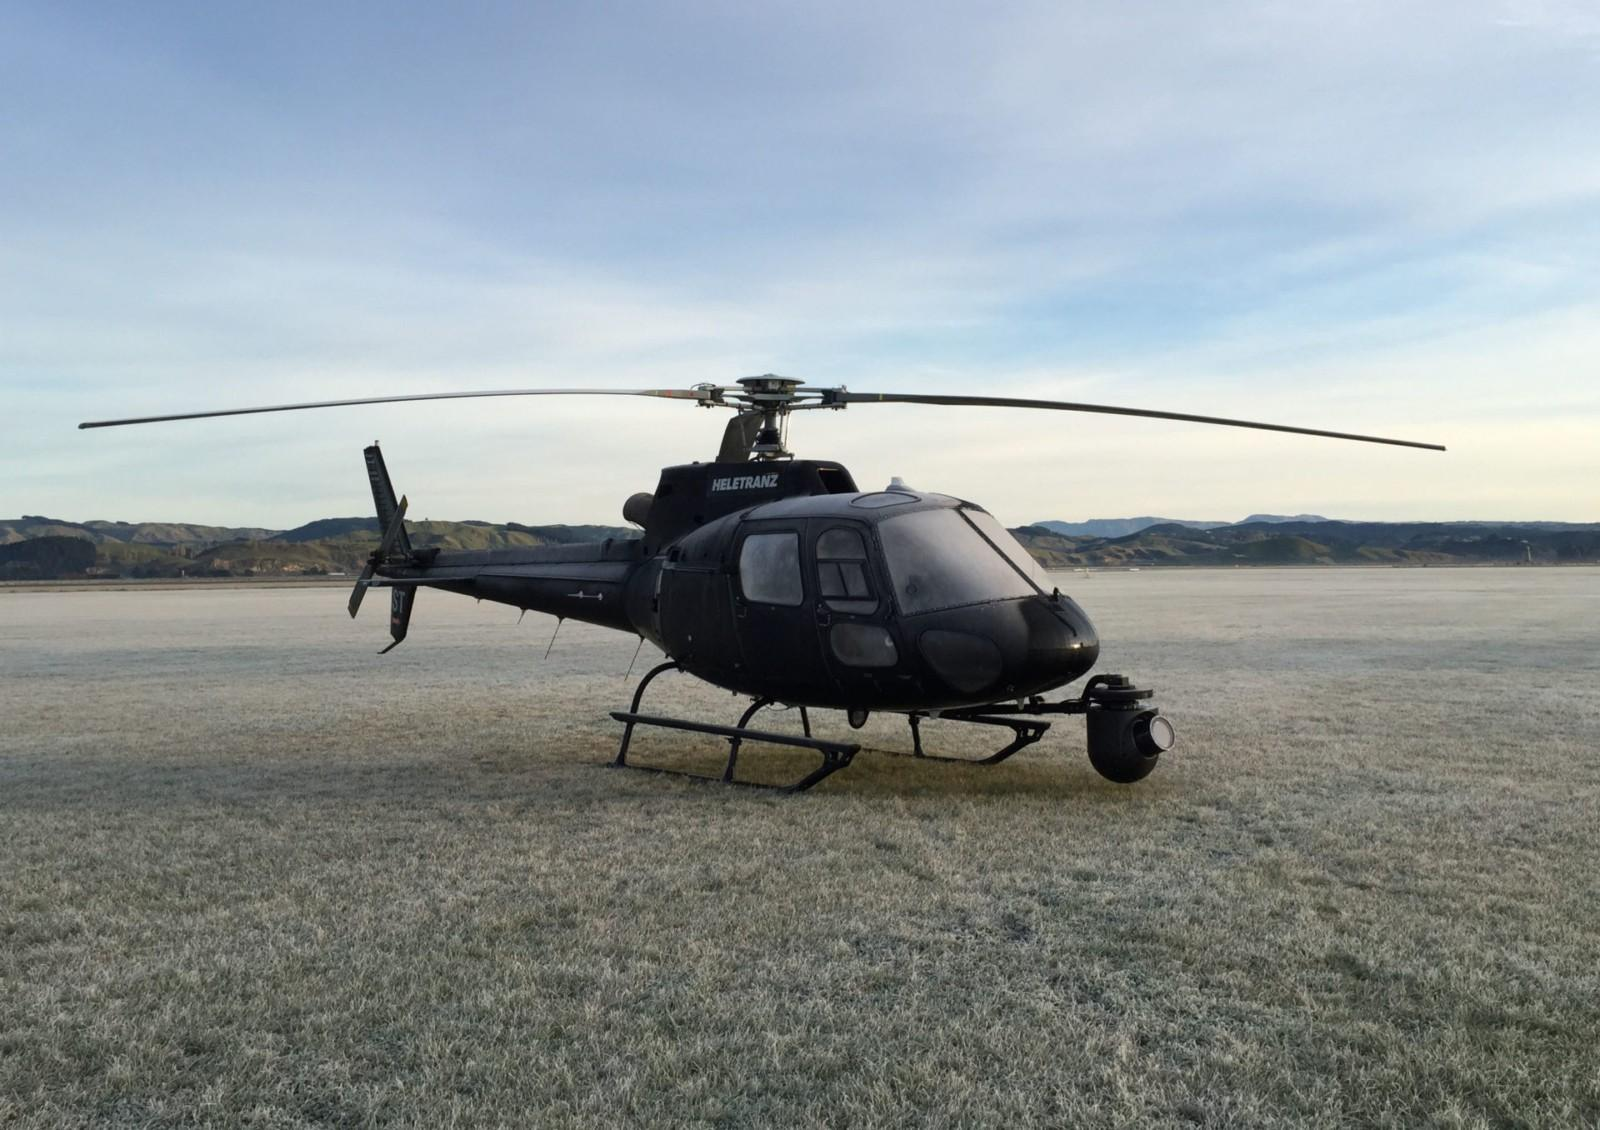 helicopter landed in frosty fieled with gyroscopic camera mounted on nose